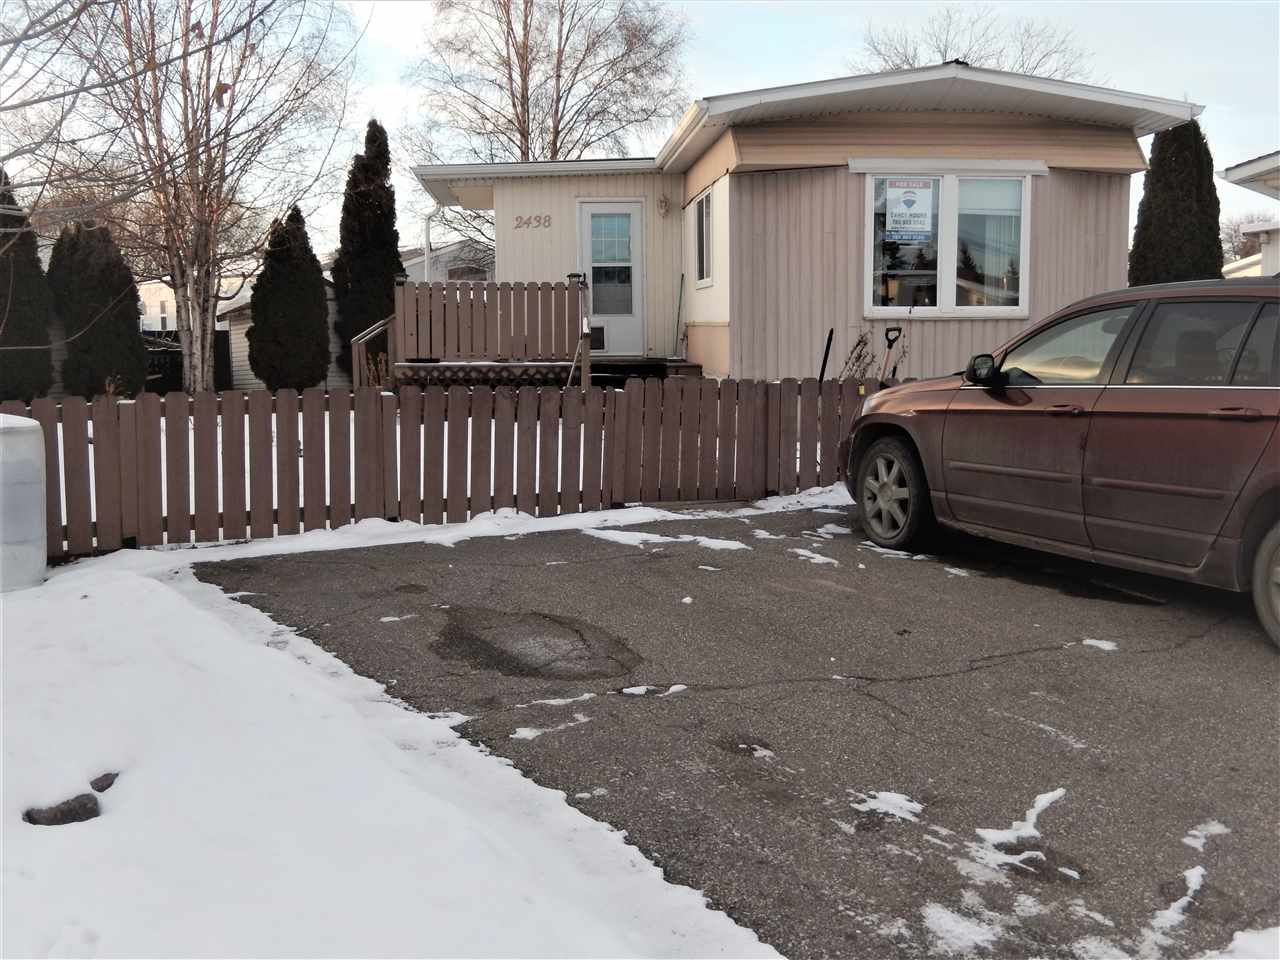 Main Photo: 2438 Lakeview Bay in Edmonton: Zone 59 Mobile for sale : MLS®# E4181185